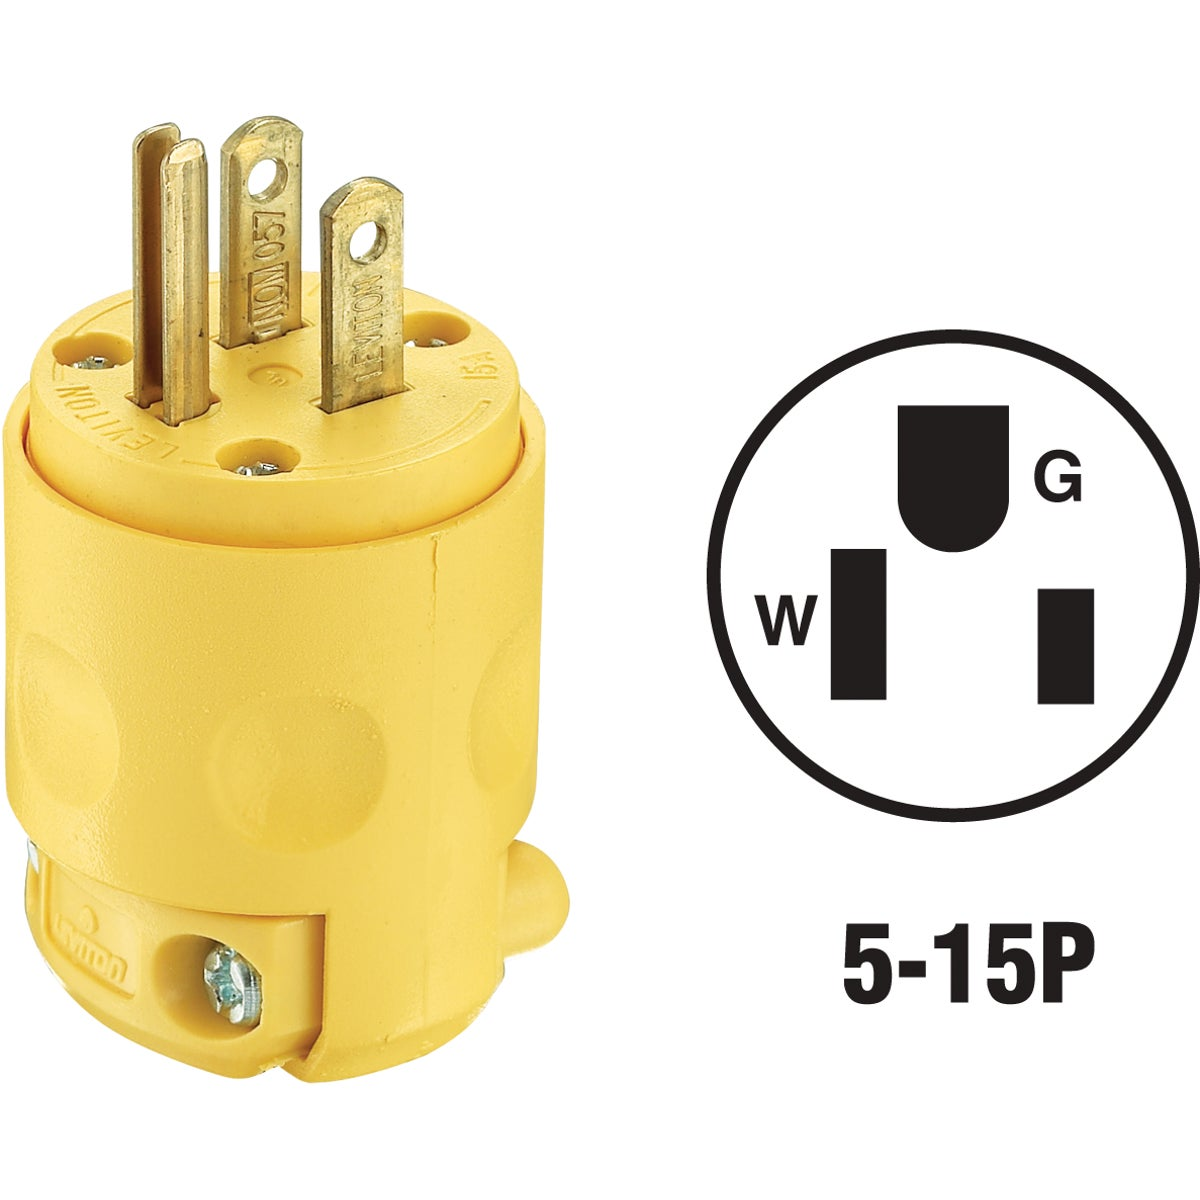 YEL GRND CORD PLUG - 515PV by Leviton Mfg Co